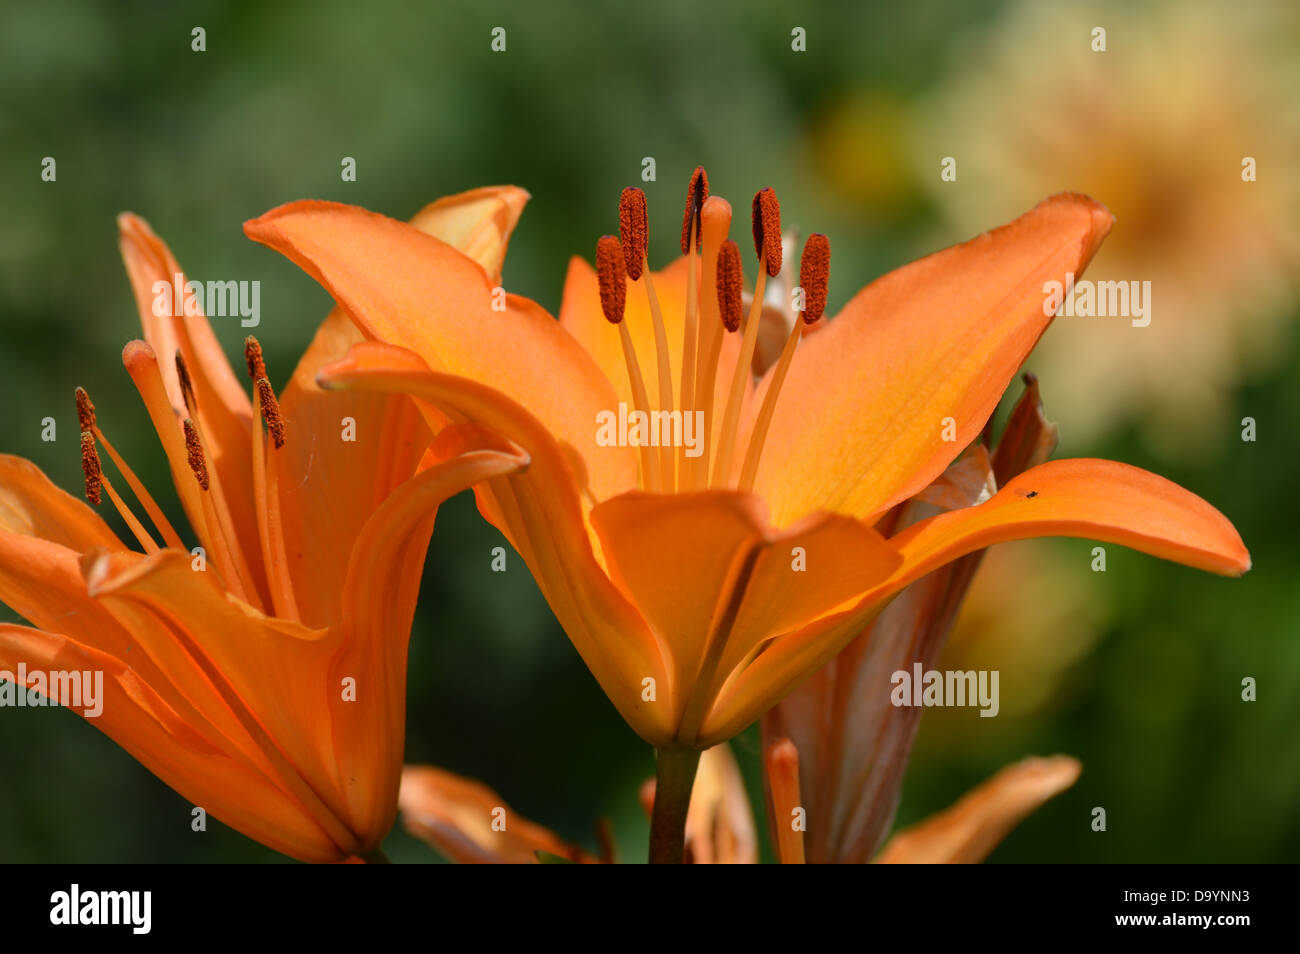 Lily flowers nature orange pollen stamen natural beauty lily flowers nature orange pollen stamen natural beauty tropical flower tropics izmirmasajfo Images